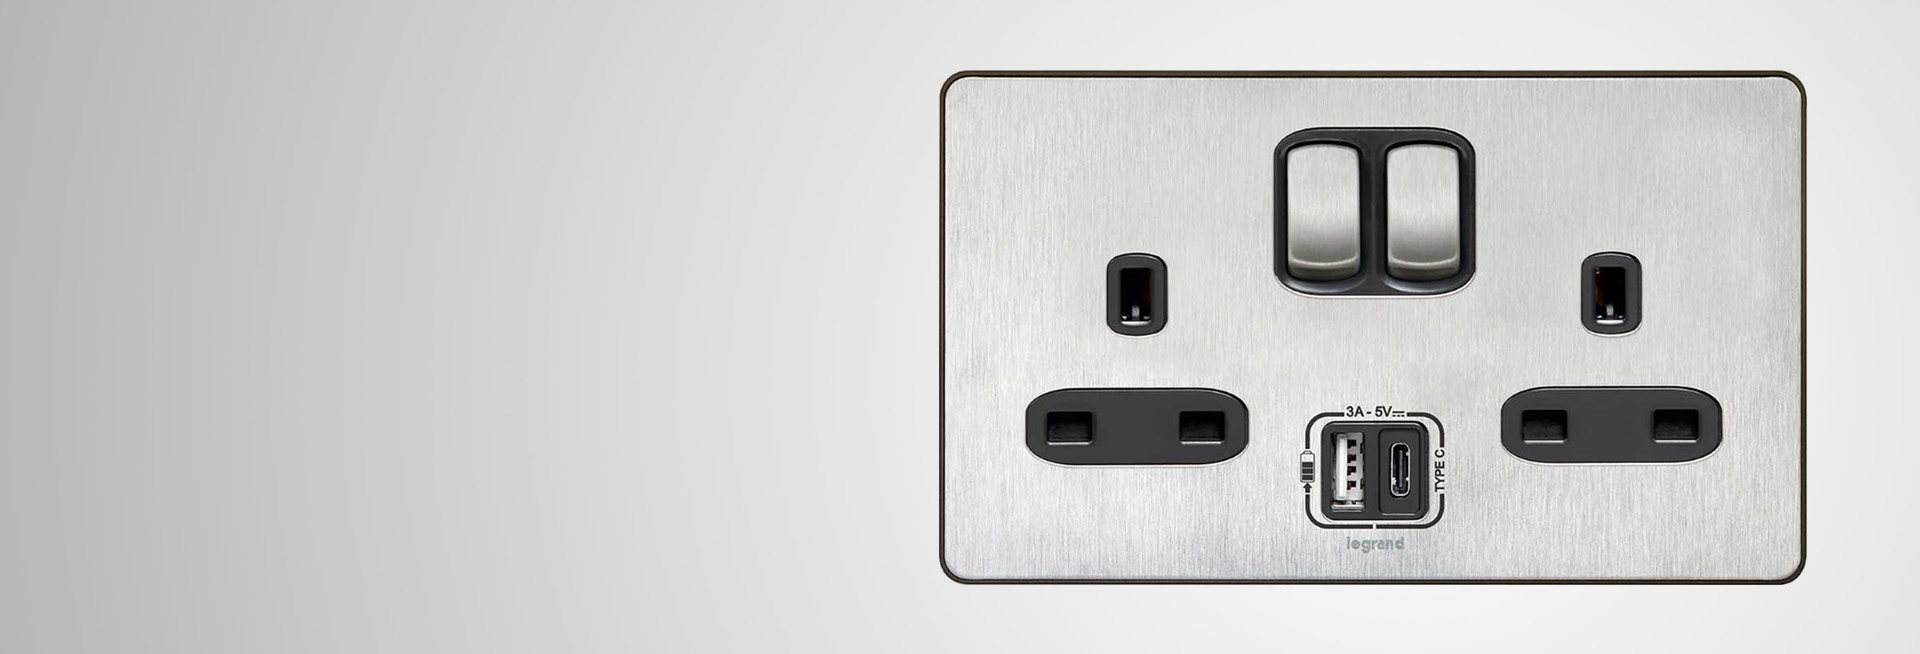 Legrand premieres 13A socket with integrated USB Type-C outlet